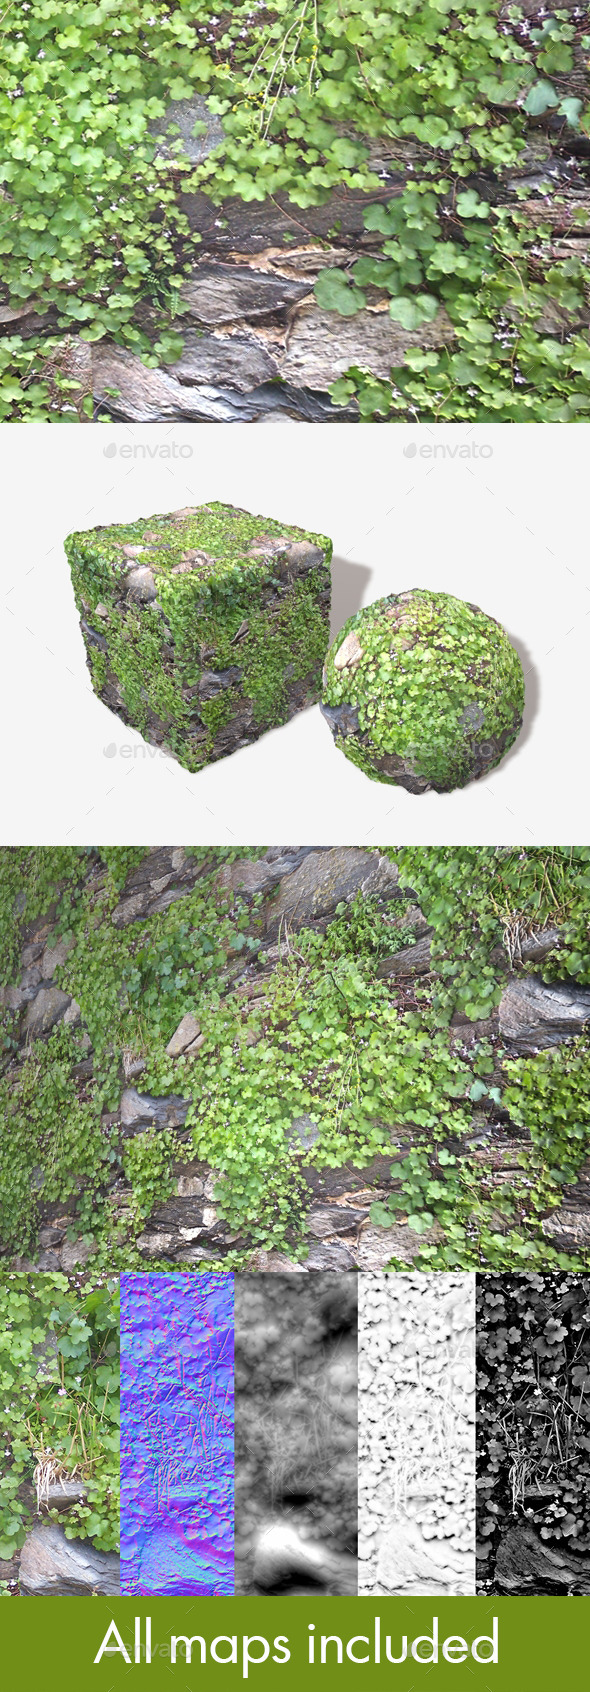 Rock Wall Plants Seamless Texture - 3DOcean Item for Sale